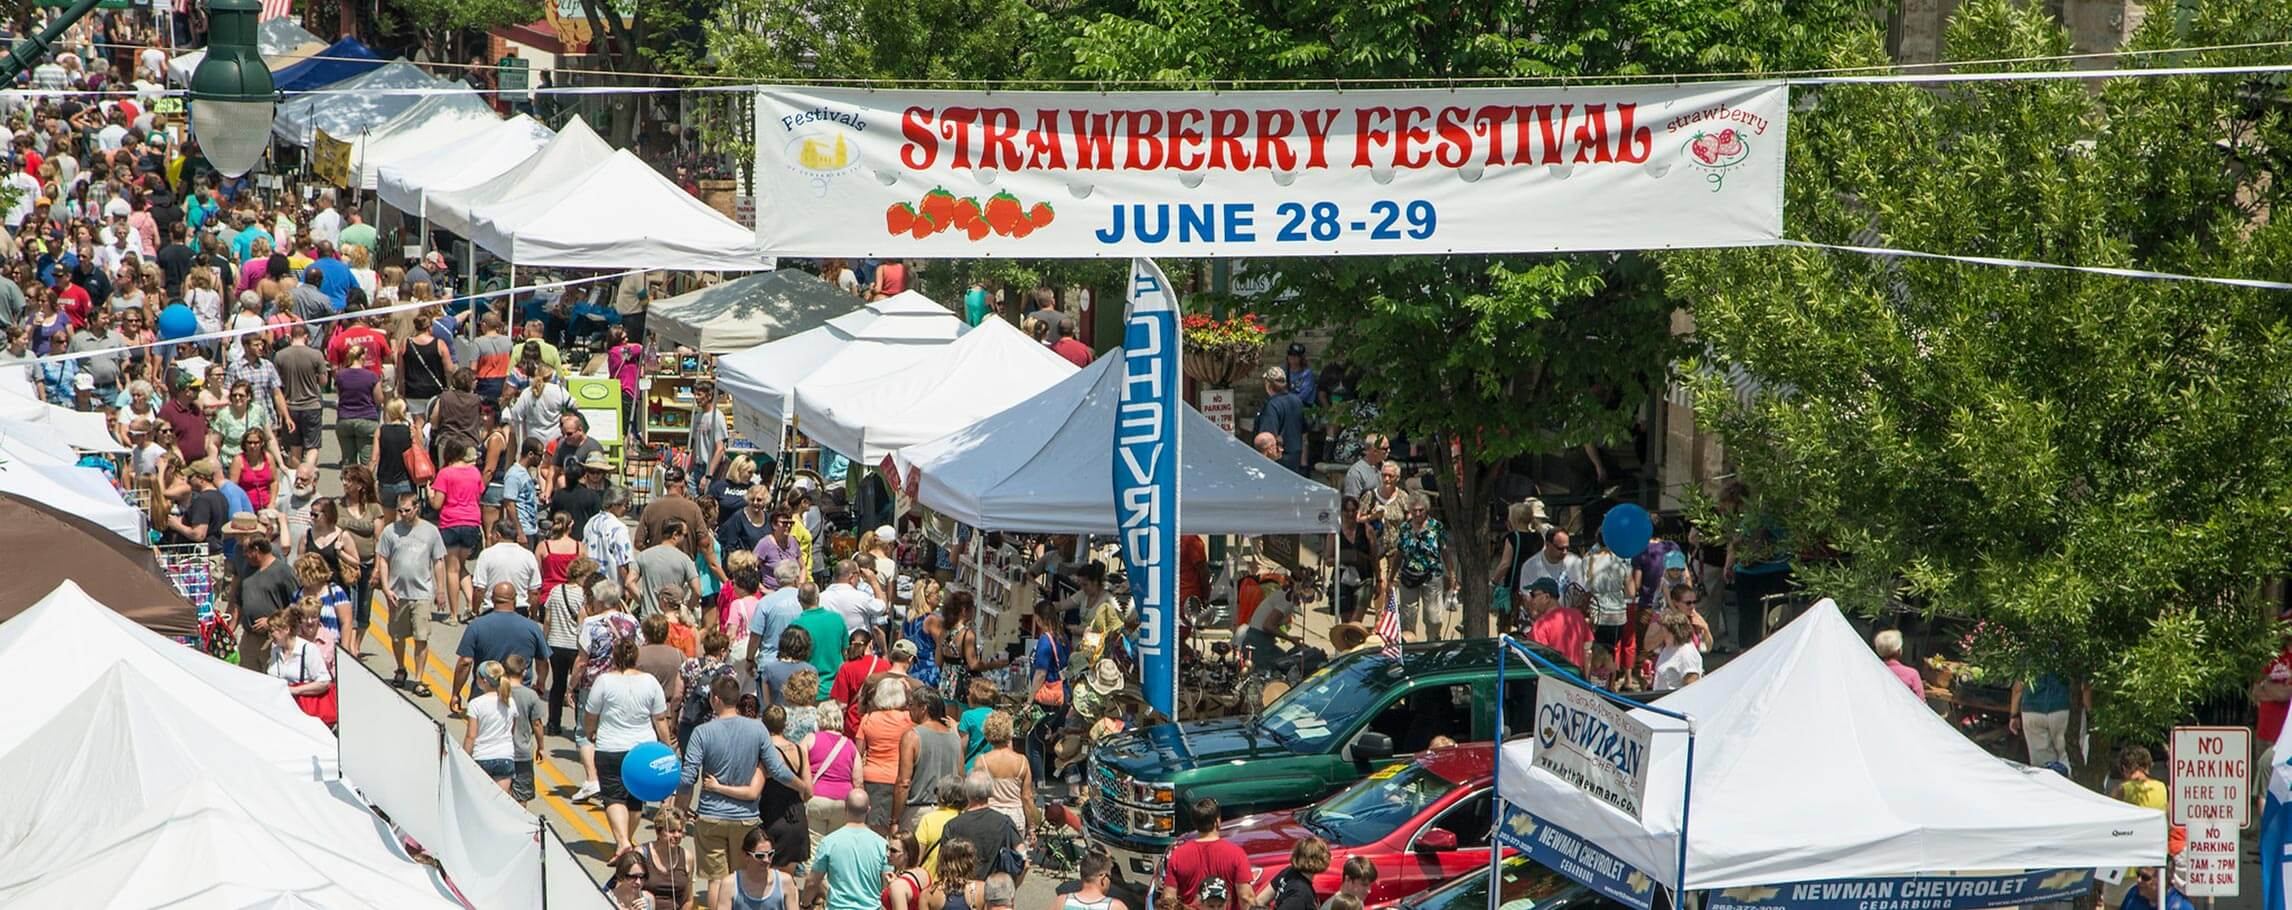 Strawberry Festival in Cedarburg - June 28-29